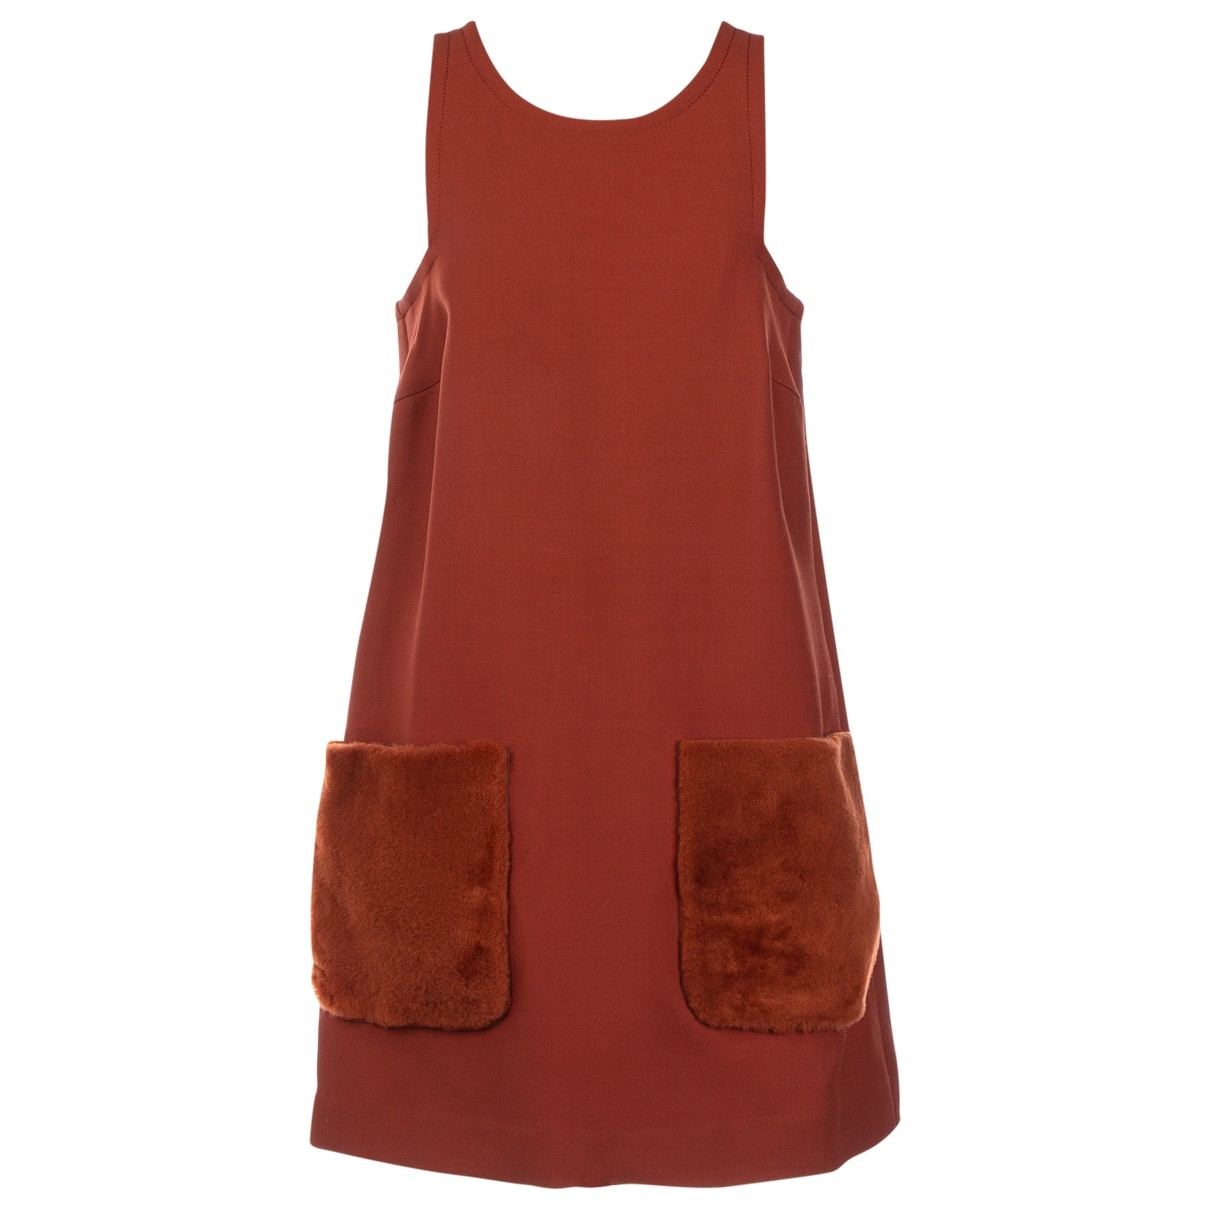 Fendi \N Brown dress for Women 36 IT